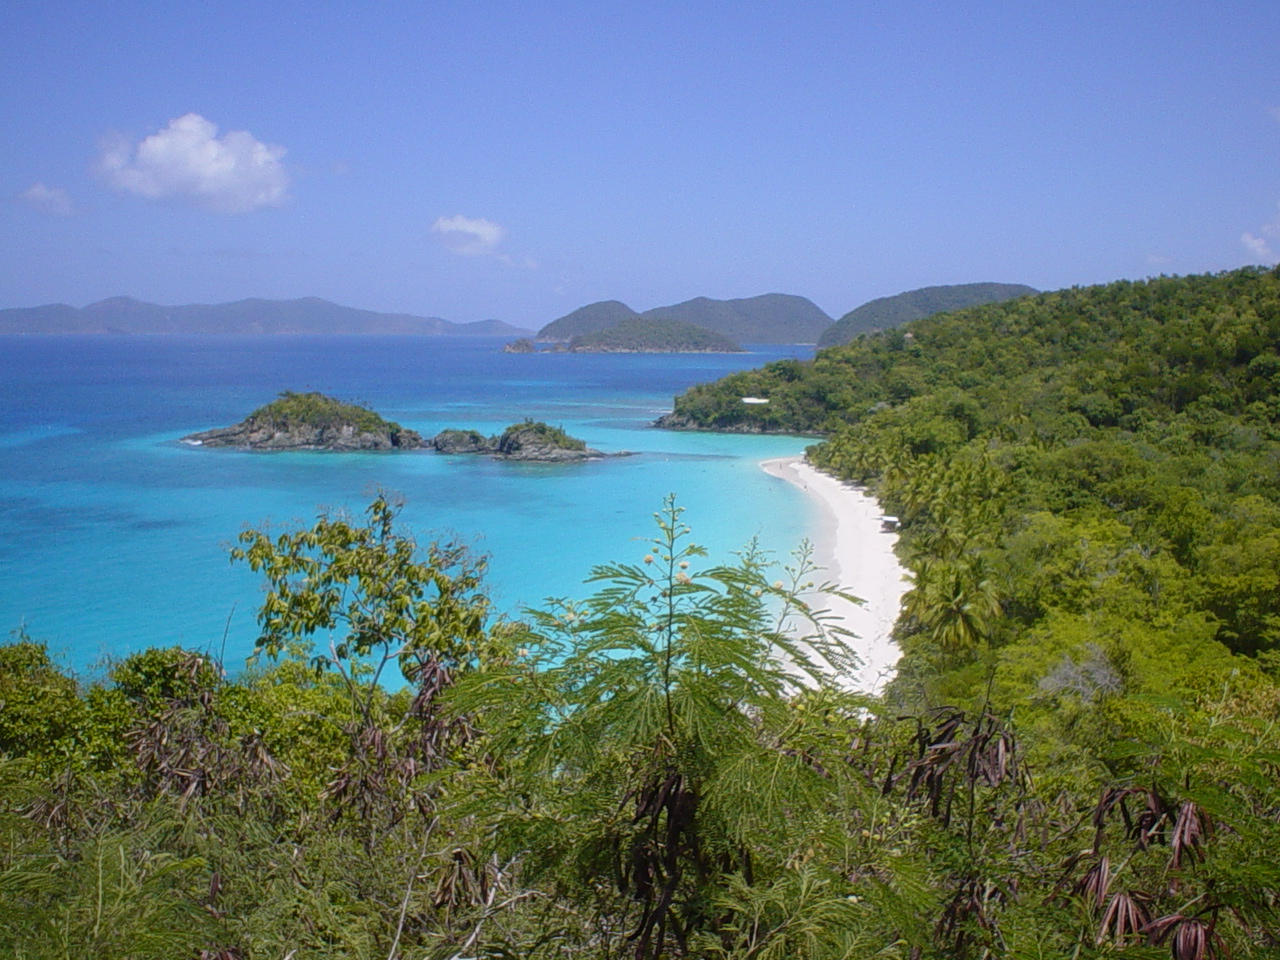 Trunk Bay on St. John, claimed by the British but never settled. They effectively abandoned their claim to the island in 1718.